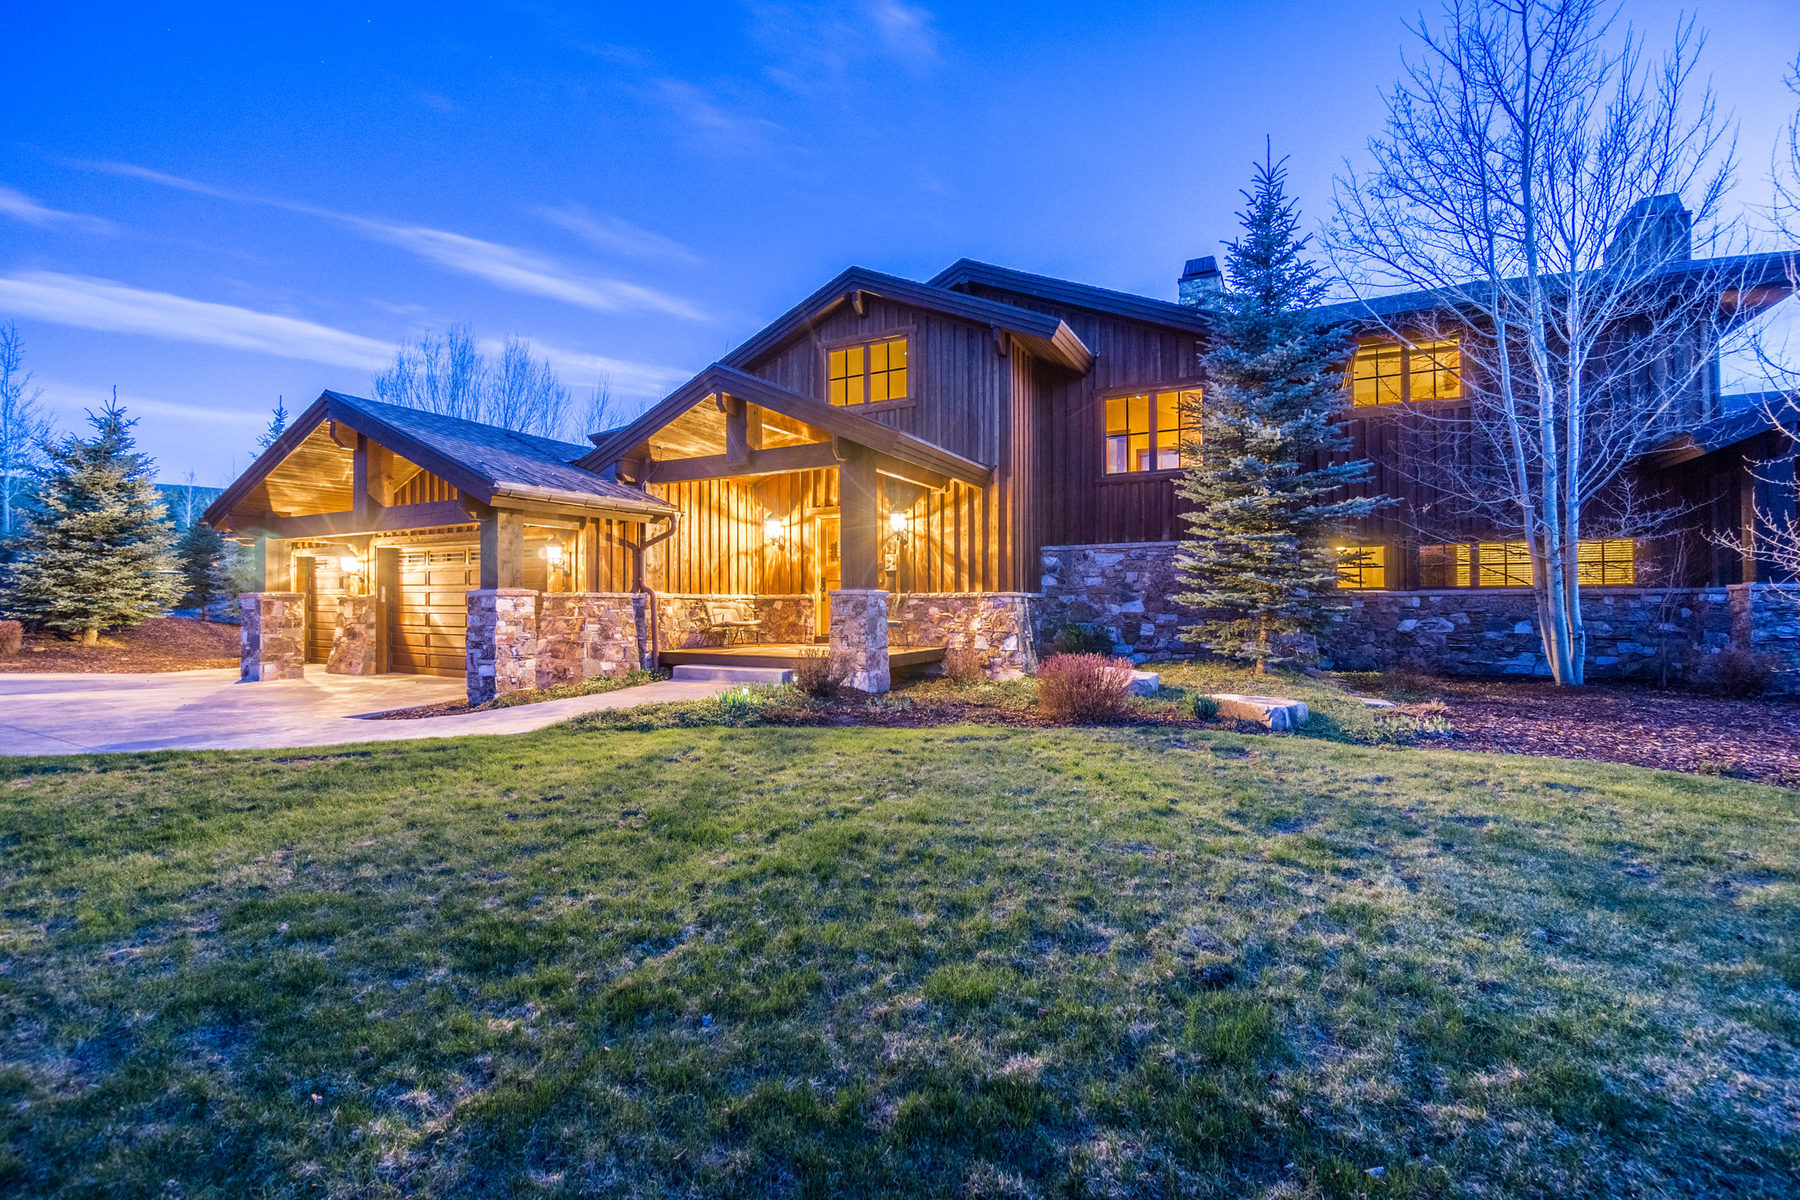 Single Family Home for Sale at Unobstructed Views of Park City Ski Areas 5800 Mountain Ranch Dr Park City, Utah 84098 United States